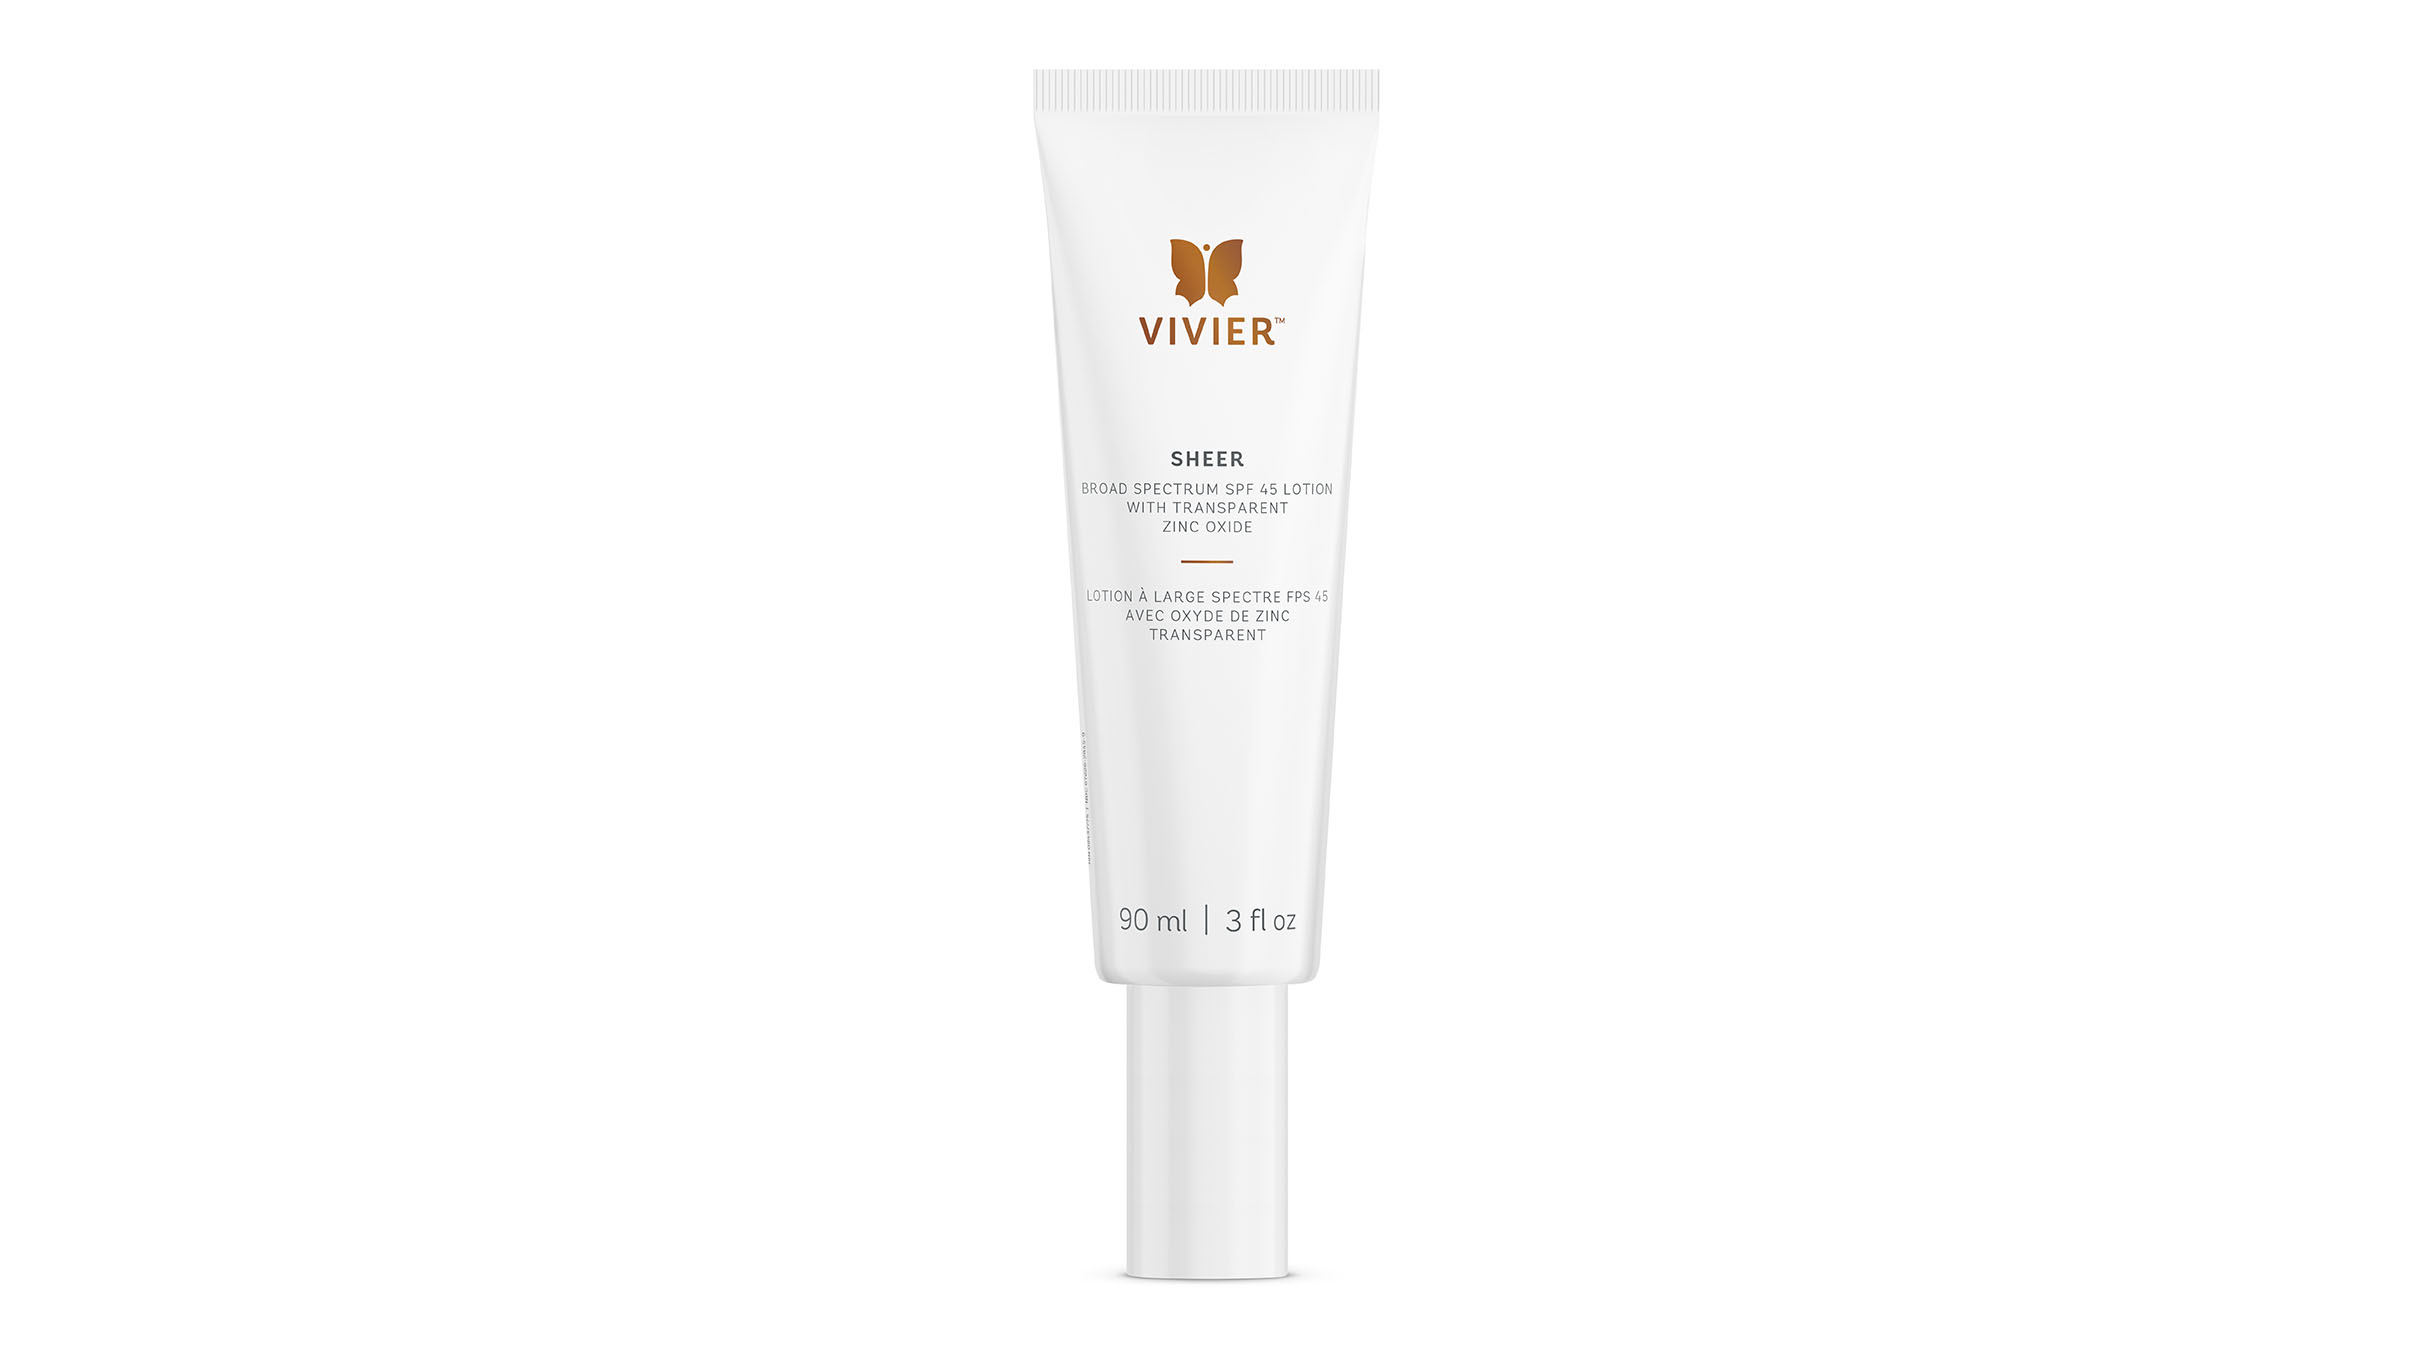 A silky sunscreen that provides broad-spectrum UVA/UVB protection with a sheer, soft touch texture that spreads evenly on your skin.  Ideal for normal to dry skin. $65 for 90ml.   Available in store in Bancroft and Haliburton or online.